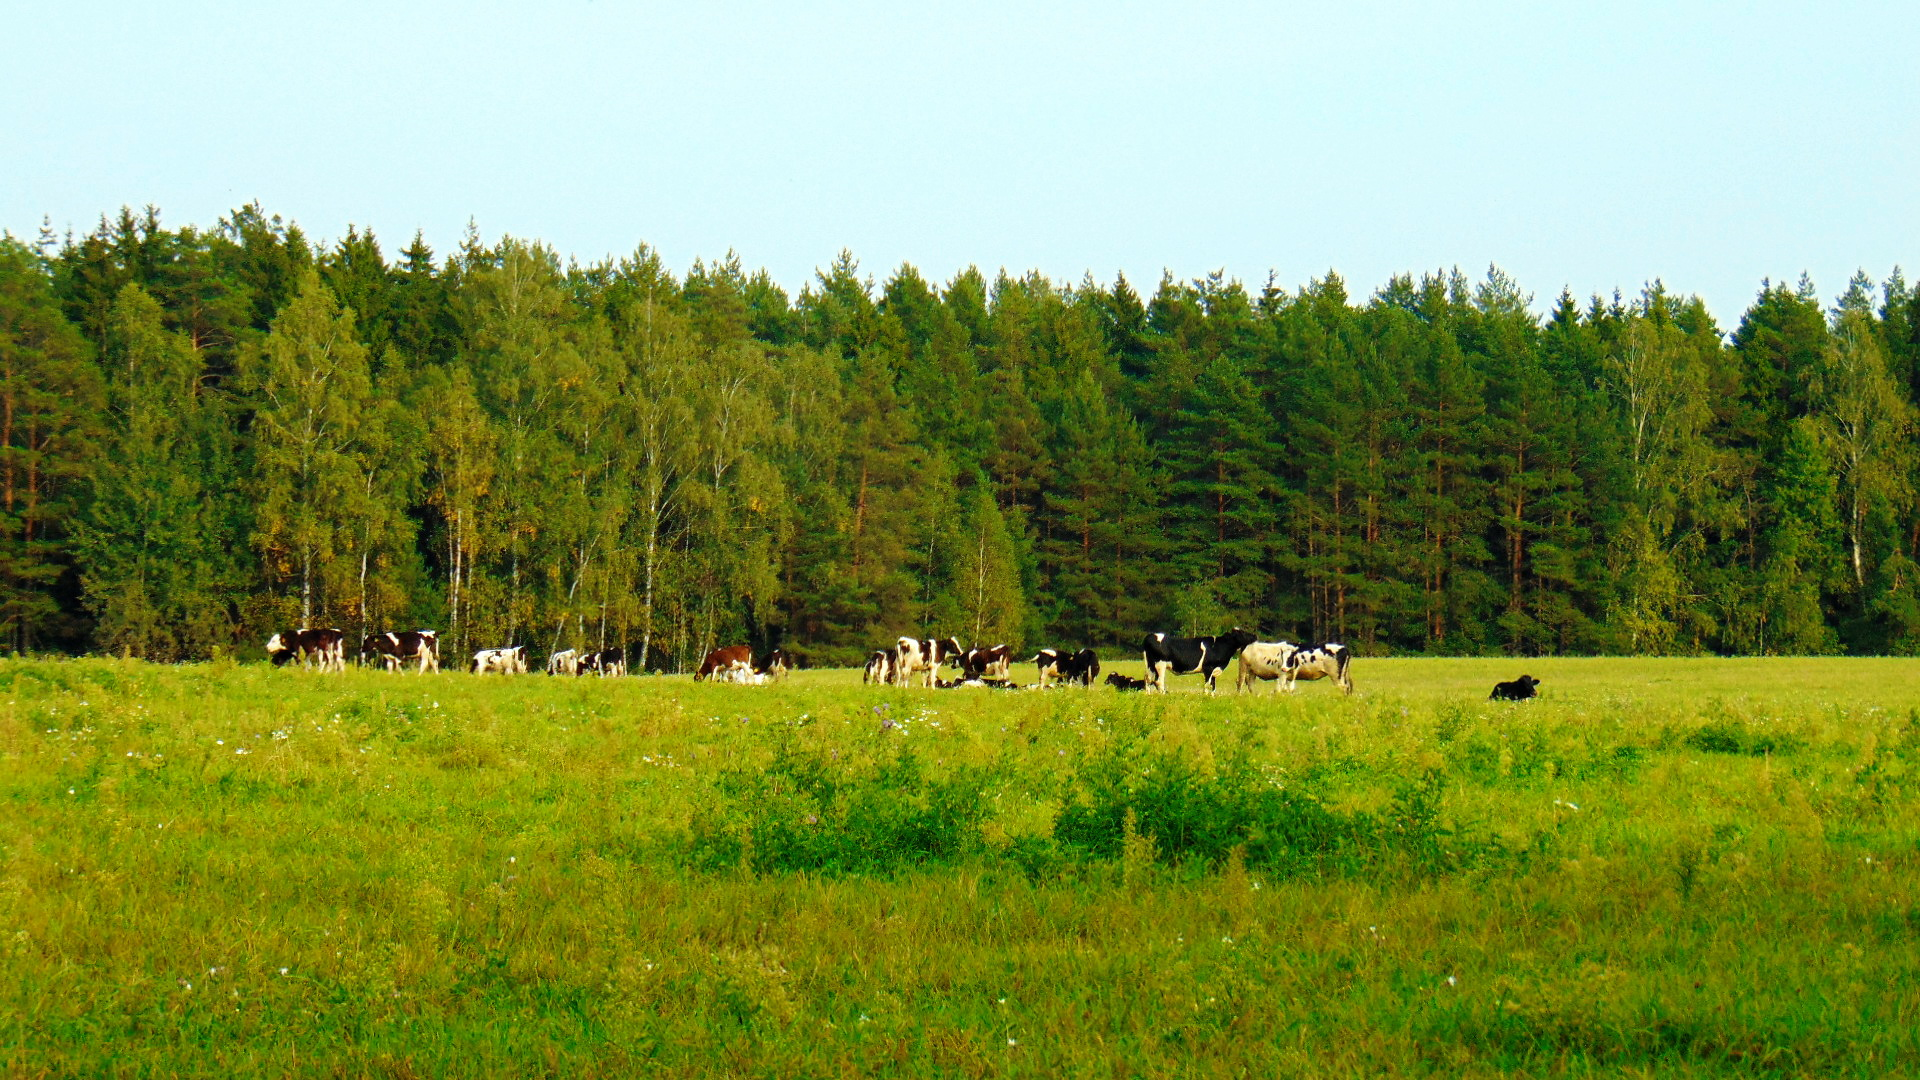 field with cows Image